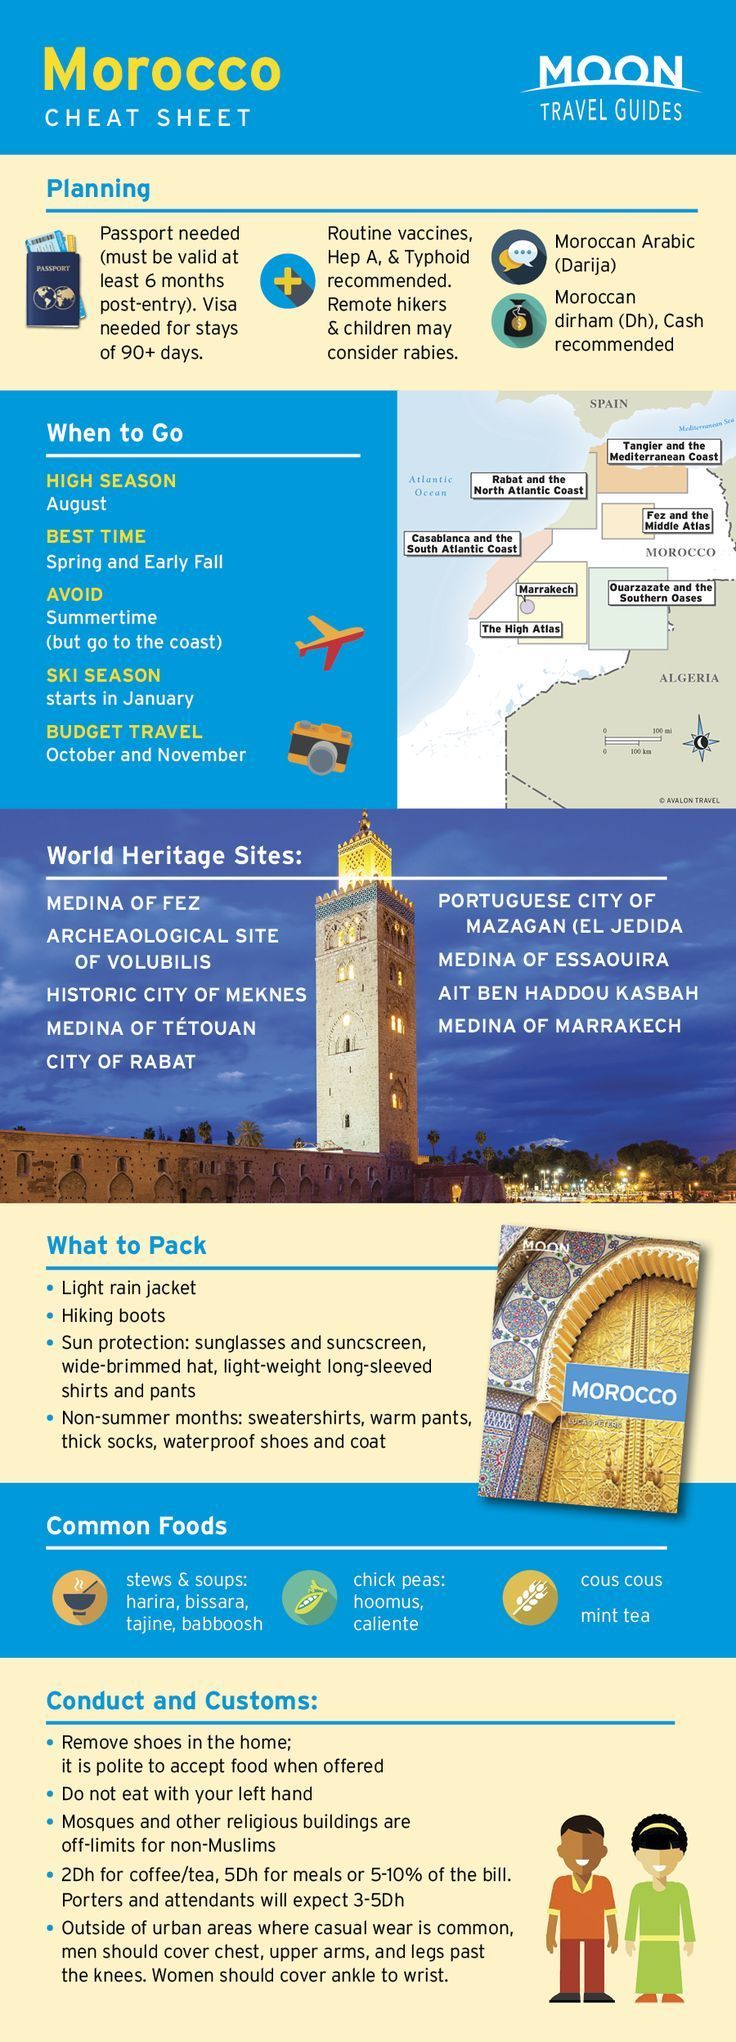 Get started planning your Moroccan vacation with this handy cheat sheet which summarizes when and where to go, heritage sites, tips on packing and local customs, and planning advice! Once you're ready to dig deeper, check out the Moon Morocco travel guide for suggested itineraries and travel maps. #morocco #travel